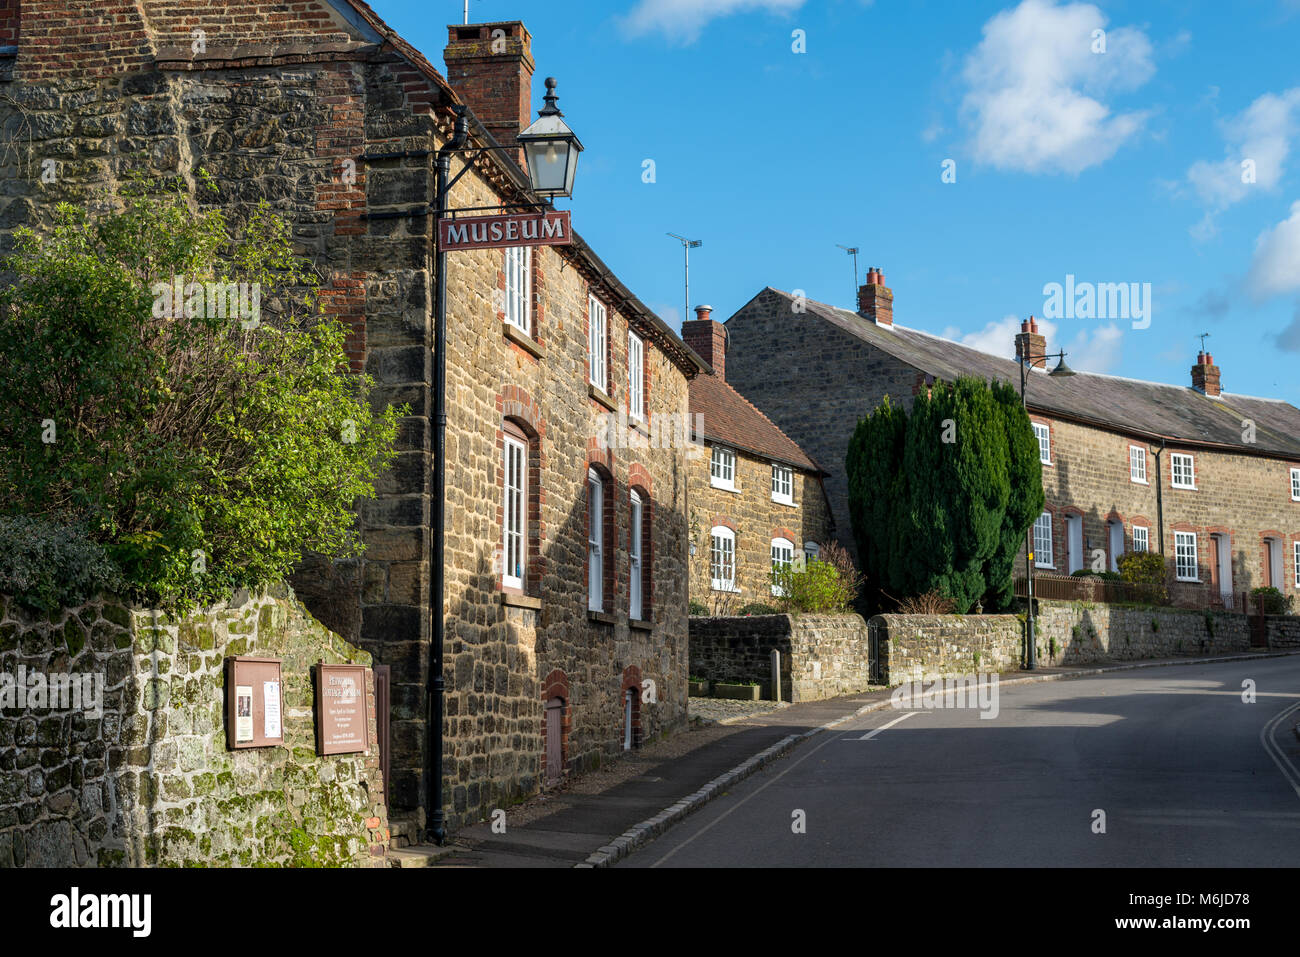 Petworth, West Sussex, England. Petworth Cottage Museum on the High Street in the town. - Stock Image